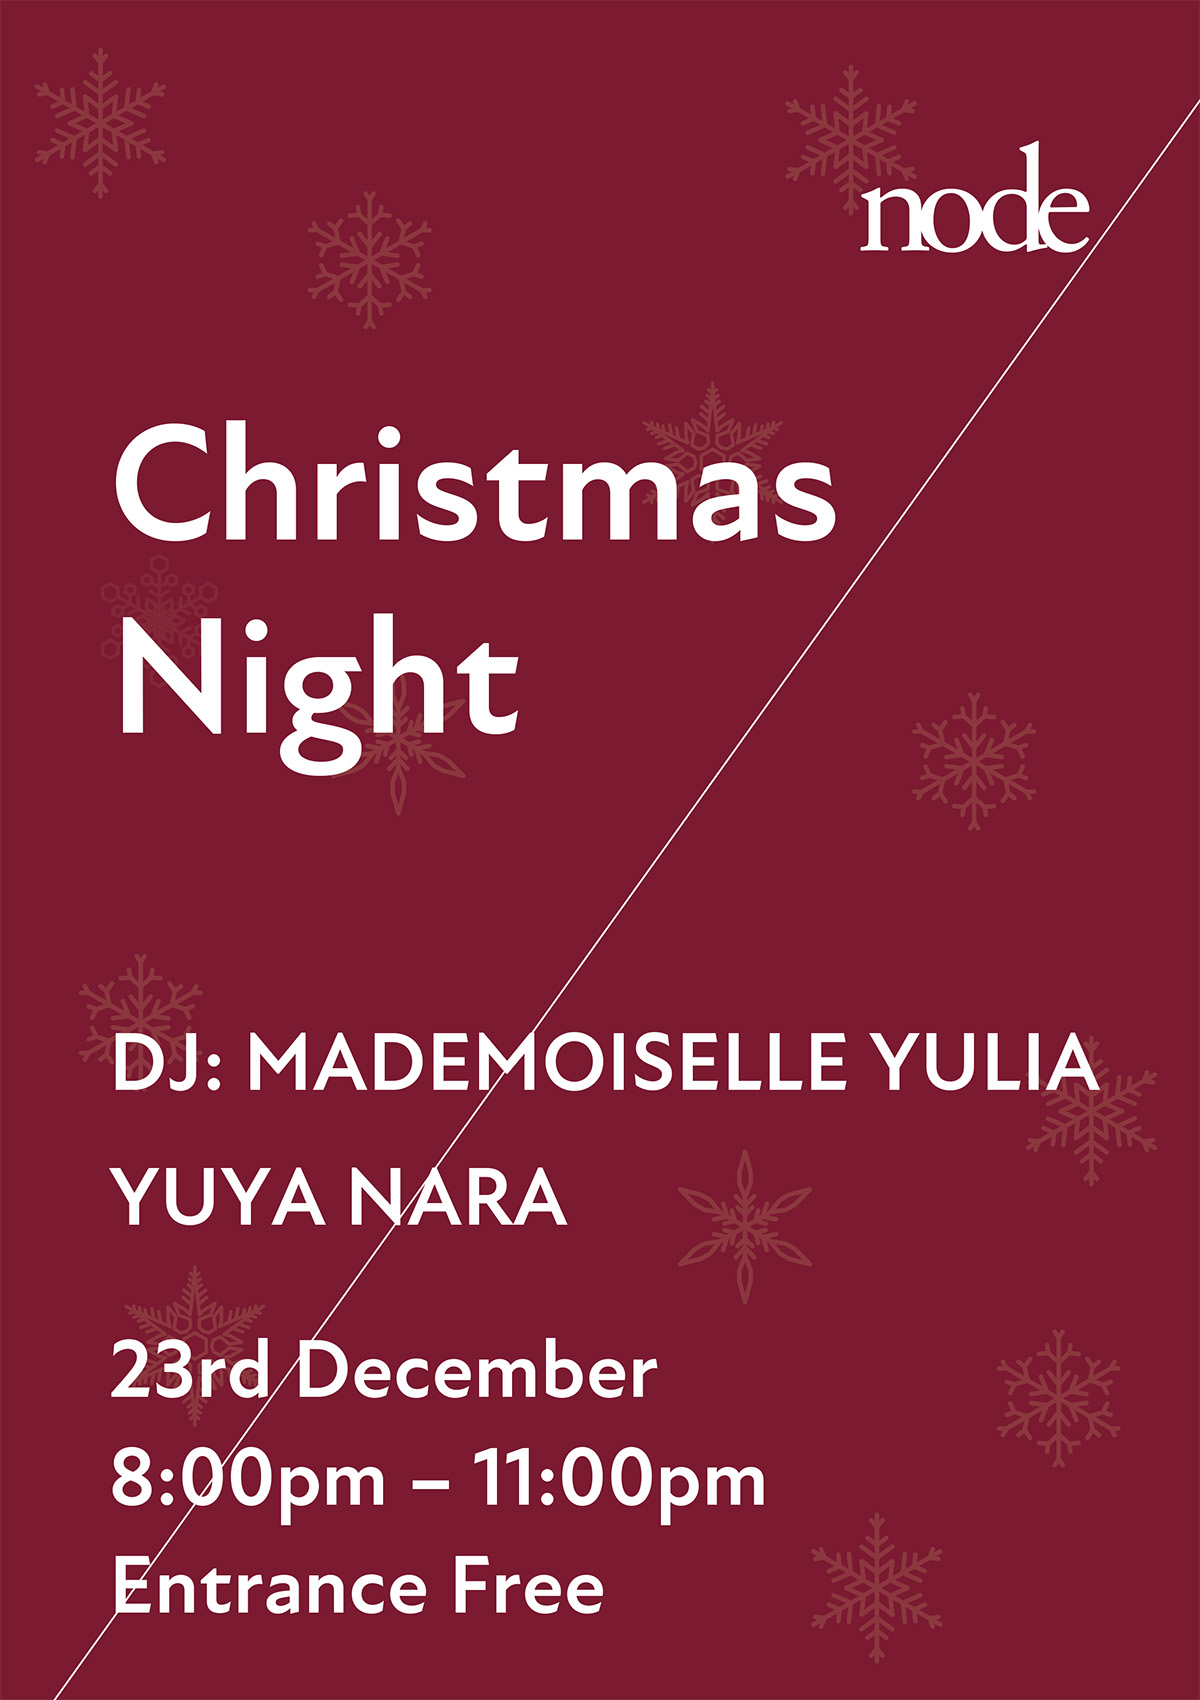 Christmas Night at node